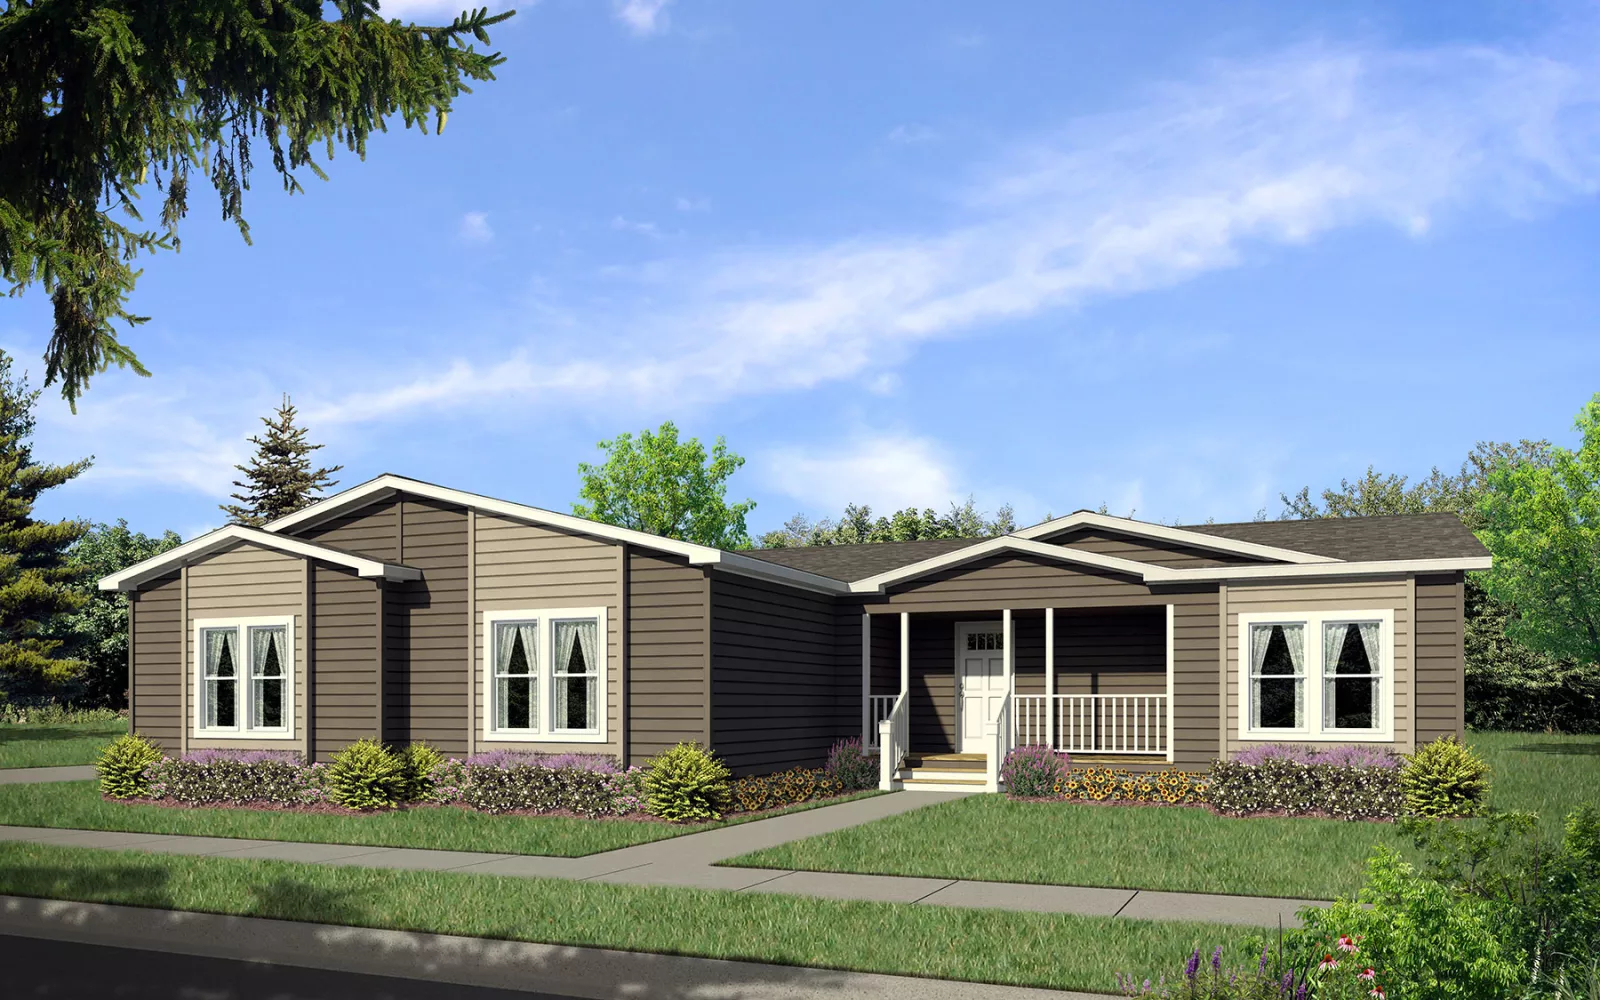 Image of the Champion Homes Avalanche 7603A exterior